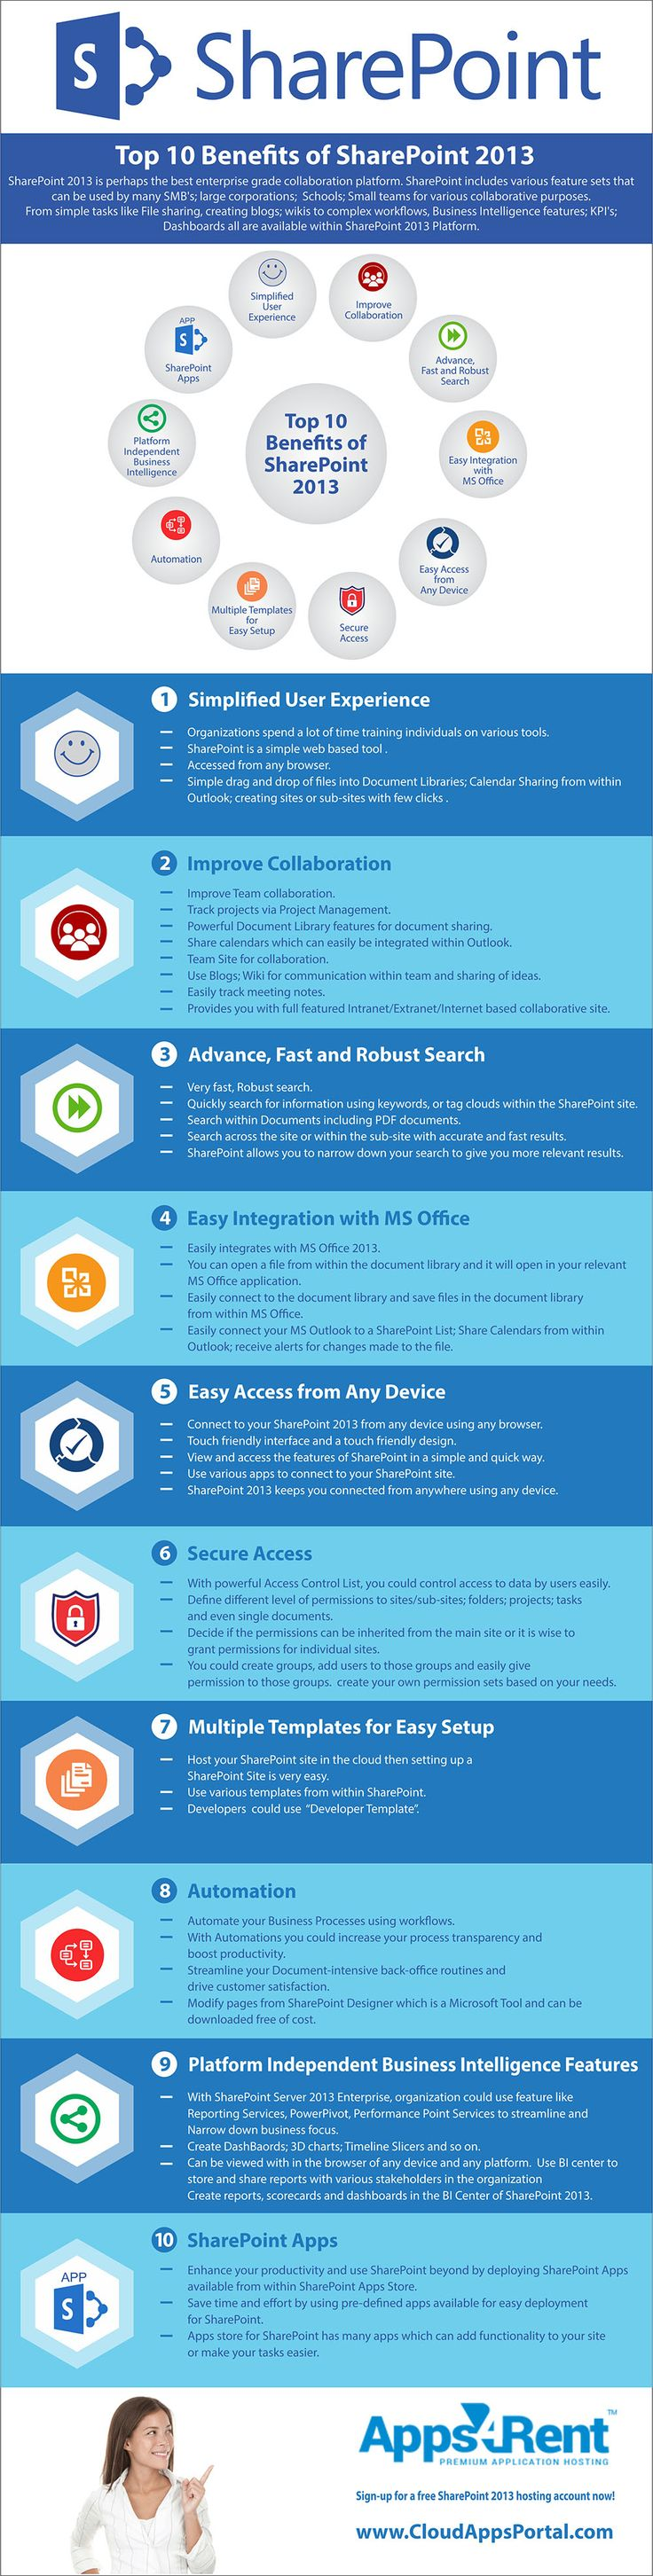 Sign-up for a free hosted SharePoint 2013 account now! https://www.CloudAppsPortal.com SharePoint 2013 is perhaps the best enterprise grade collaboration platform. Hosted SharePoint 2013 includes various feature sets that can be used by many SMB's; large corporations; schools; small teams for various collaborative purposes. #infographic